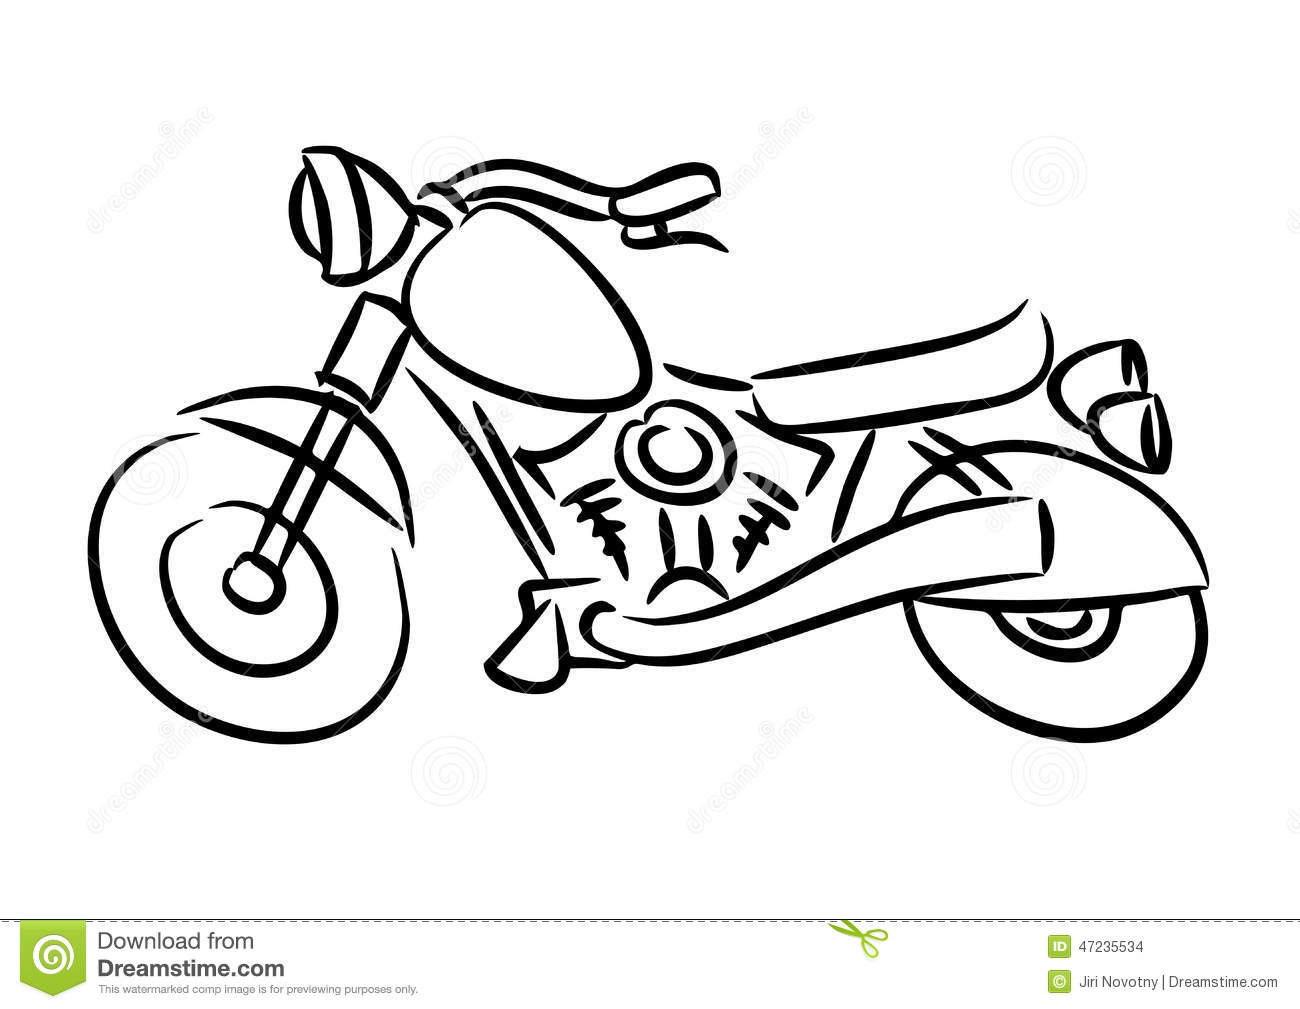 The Chopper Motorcycle Stock Illustration Illustration Of Funny